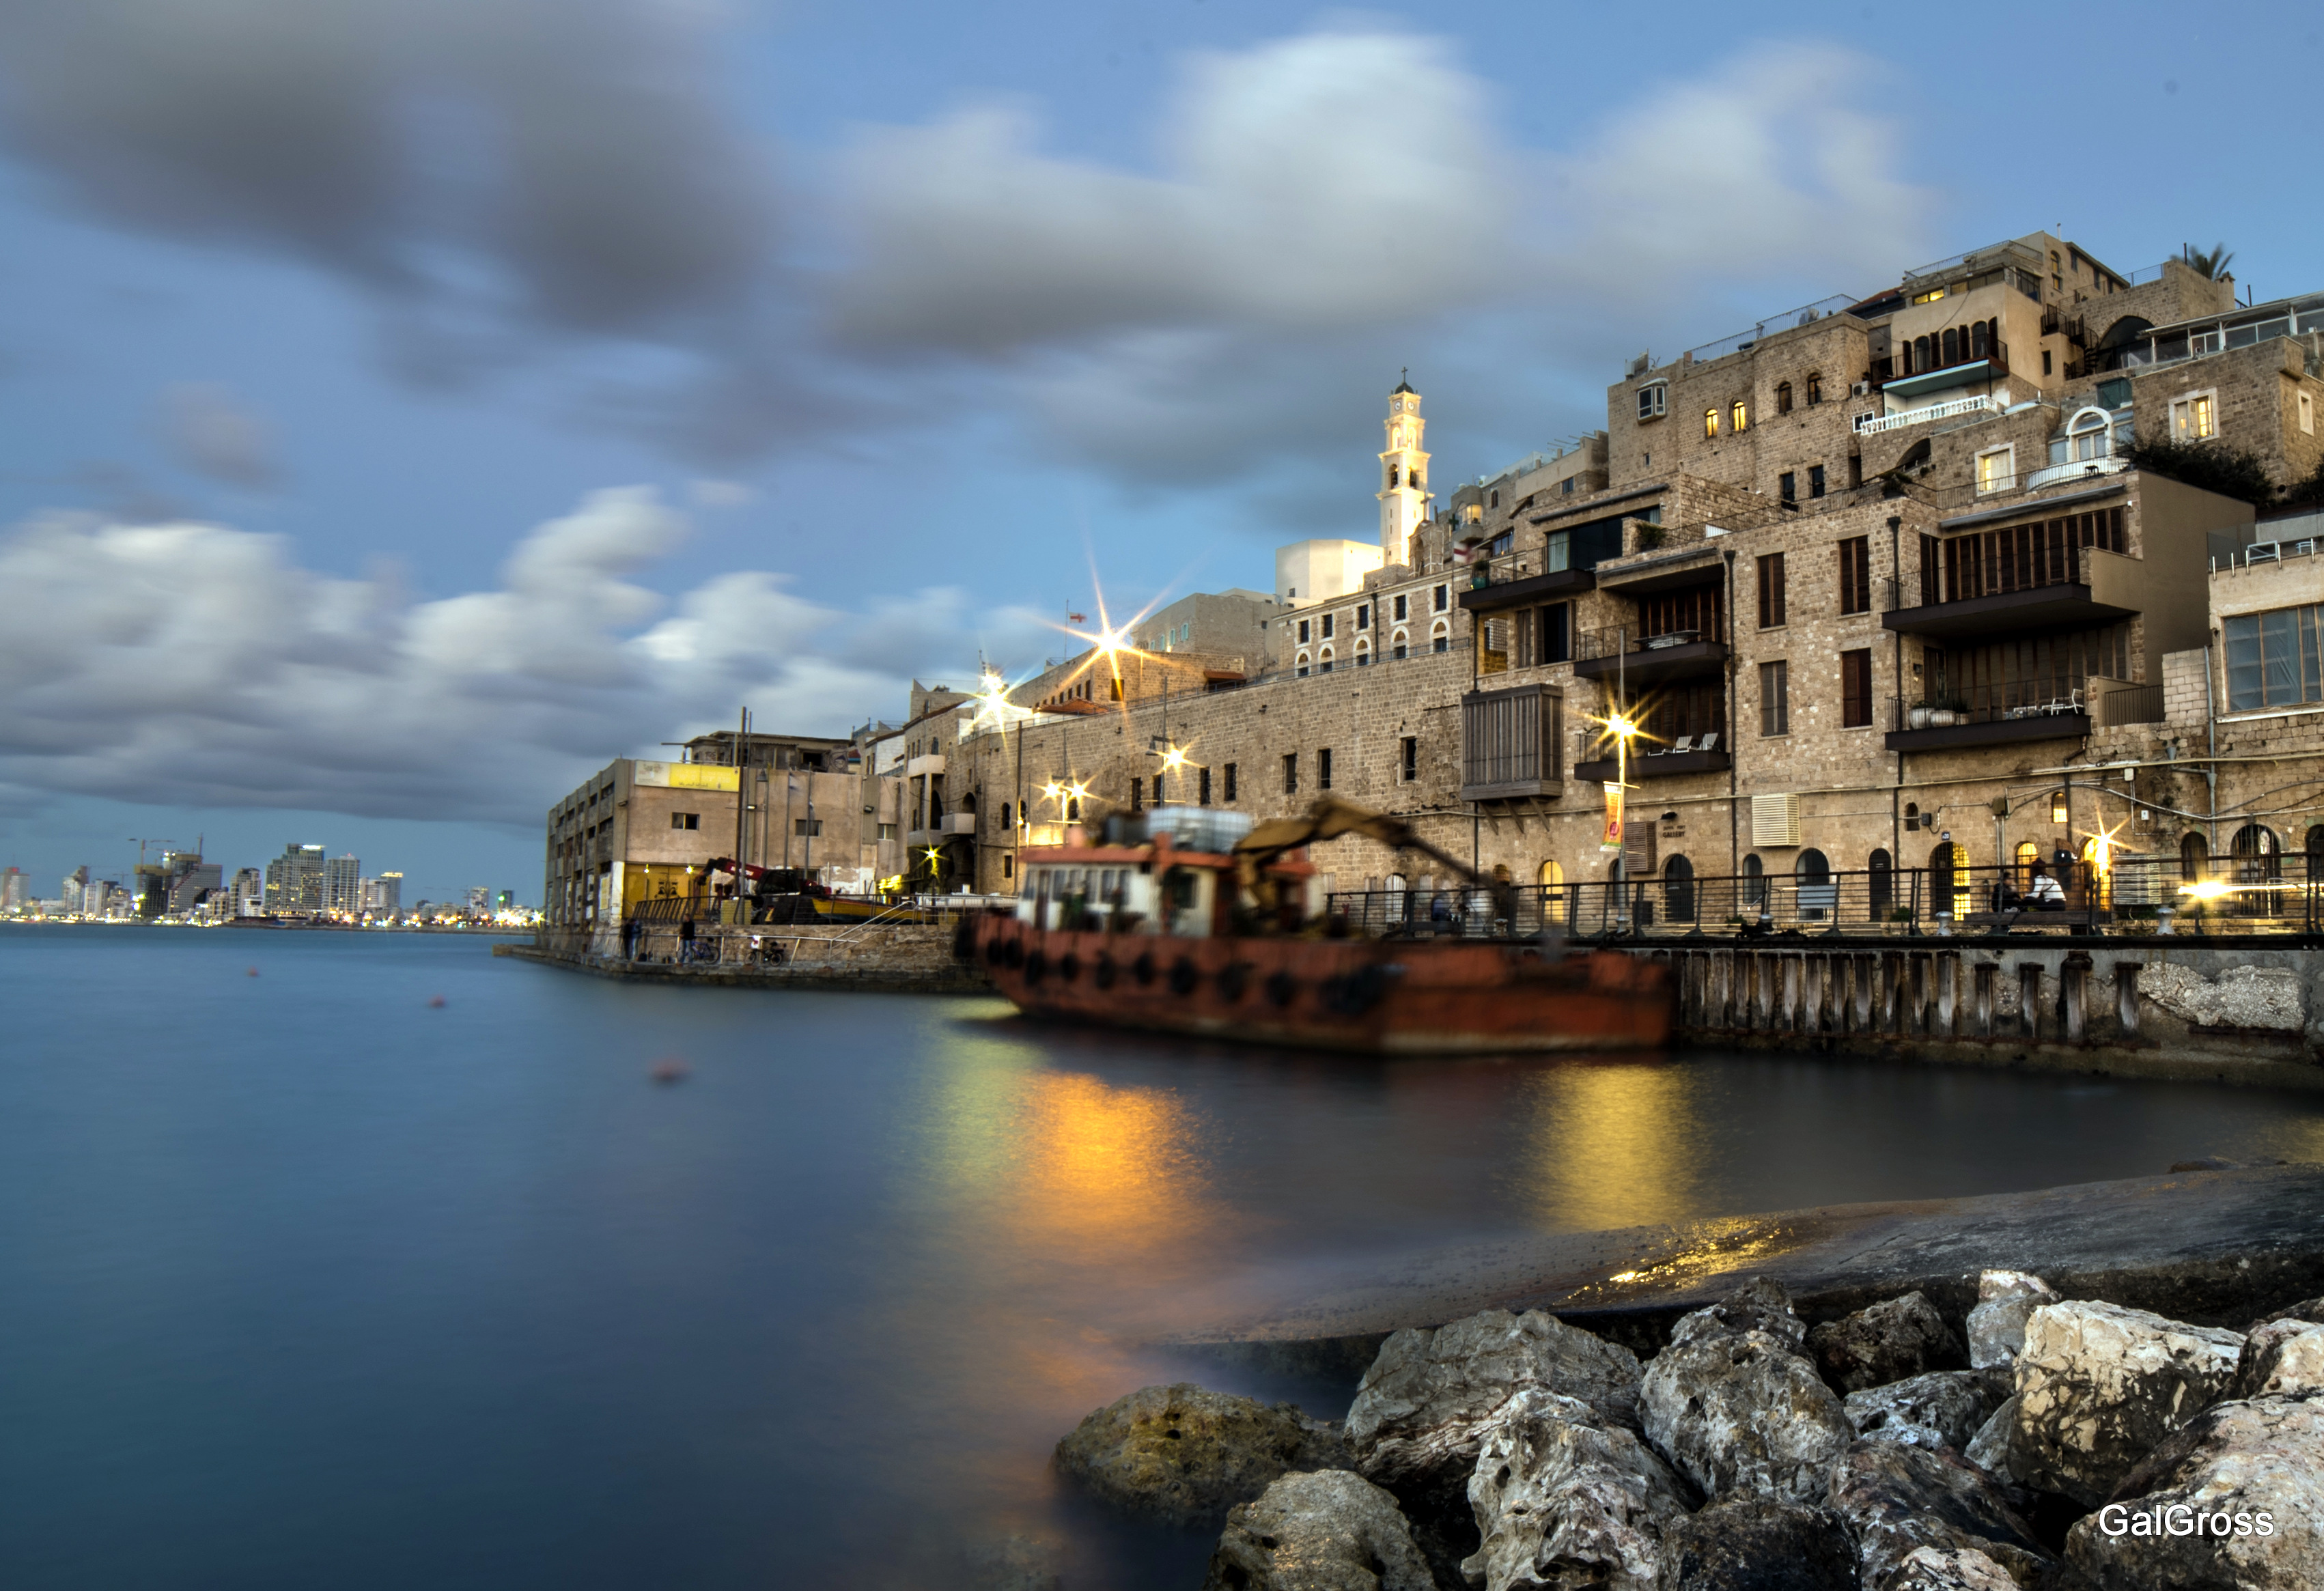 Jaffa Port at night